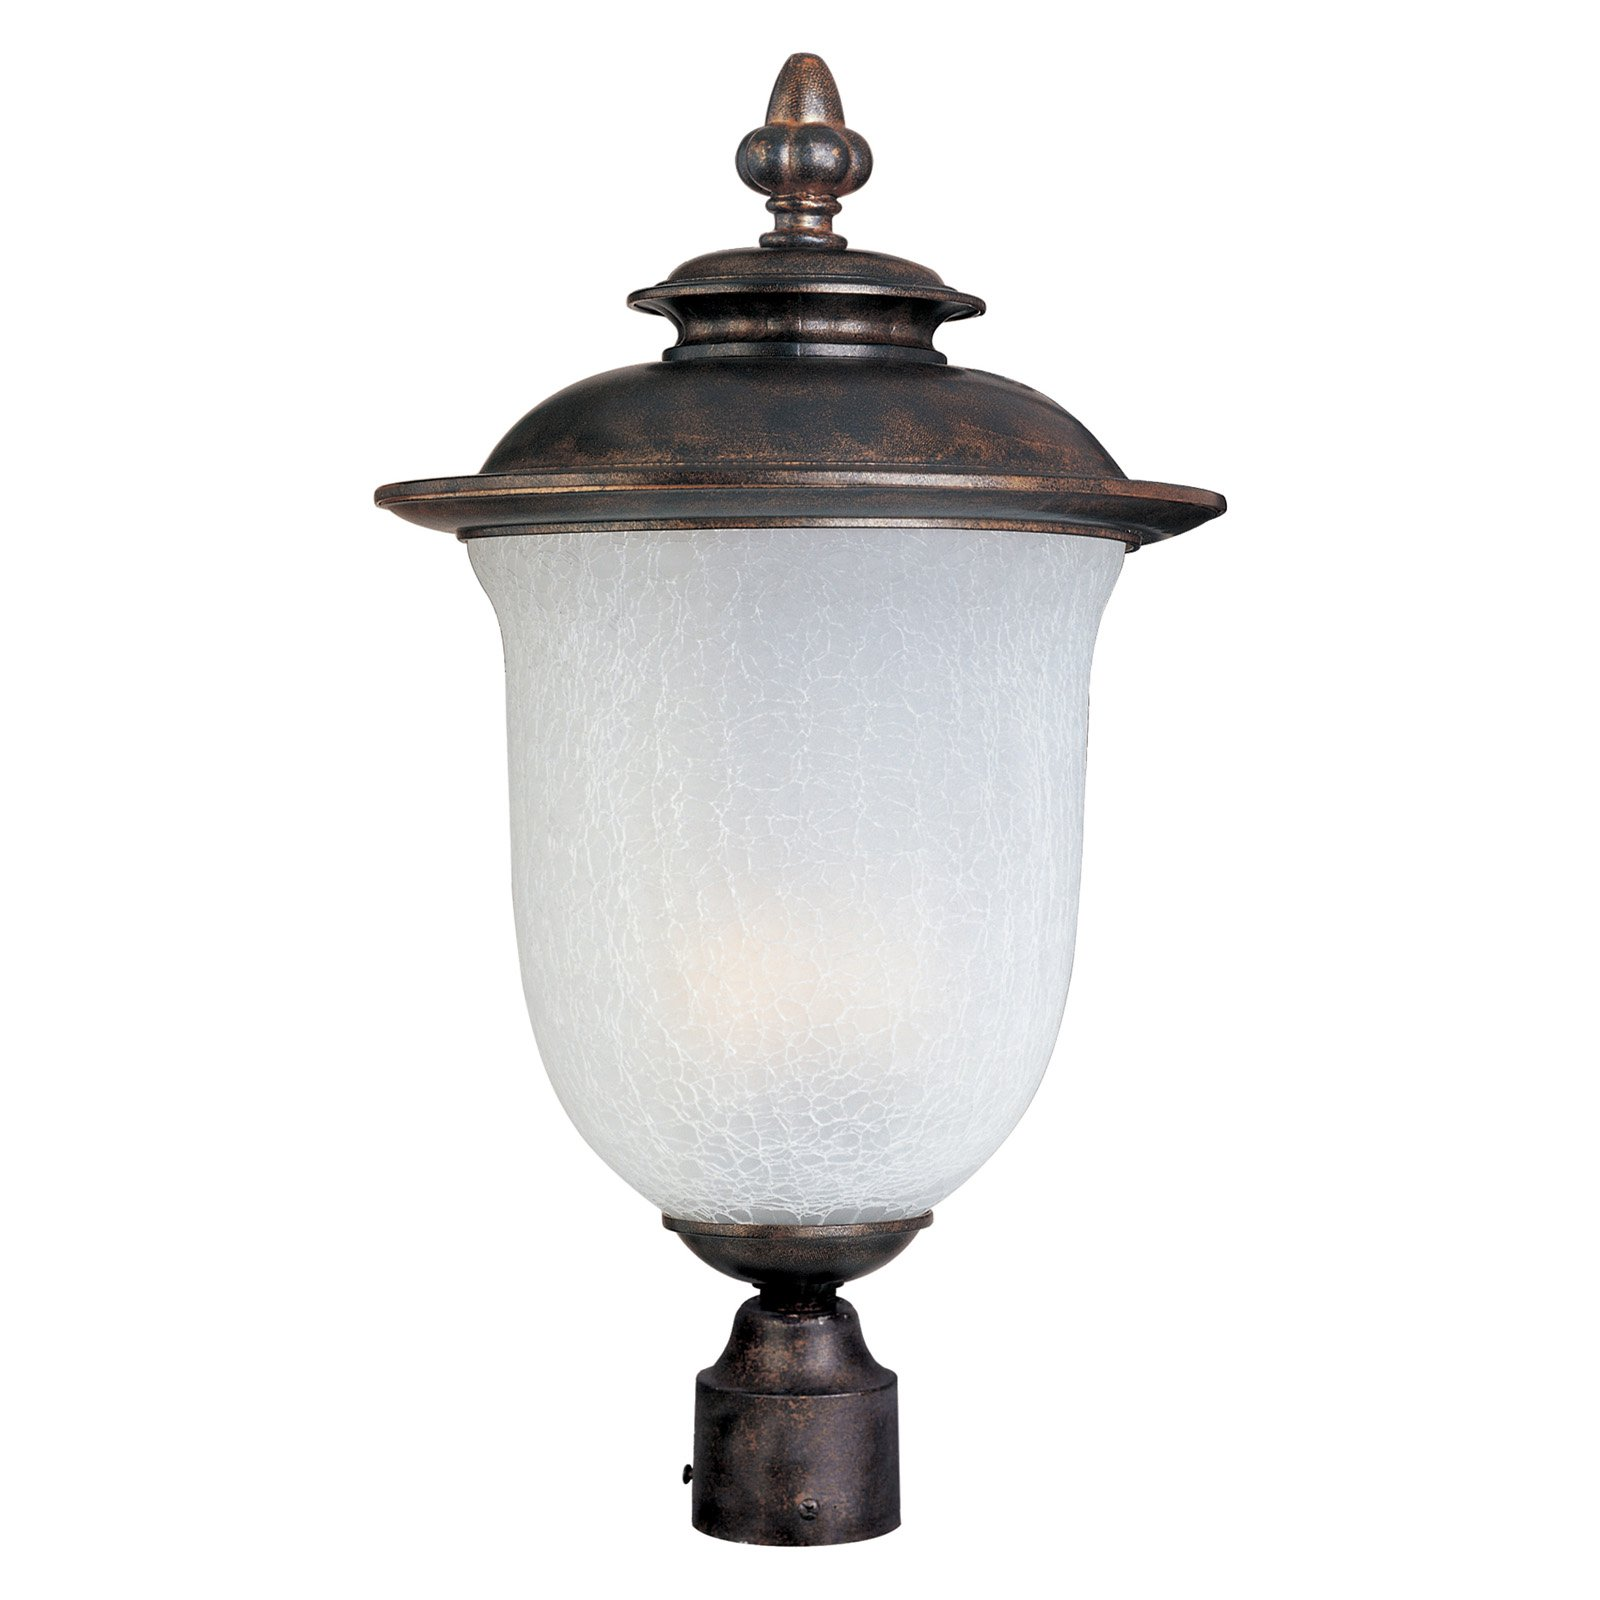 Maxim Cambria Outdoor Post Lantern 22H in. Cherry ENERGY STAR by Maxim